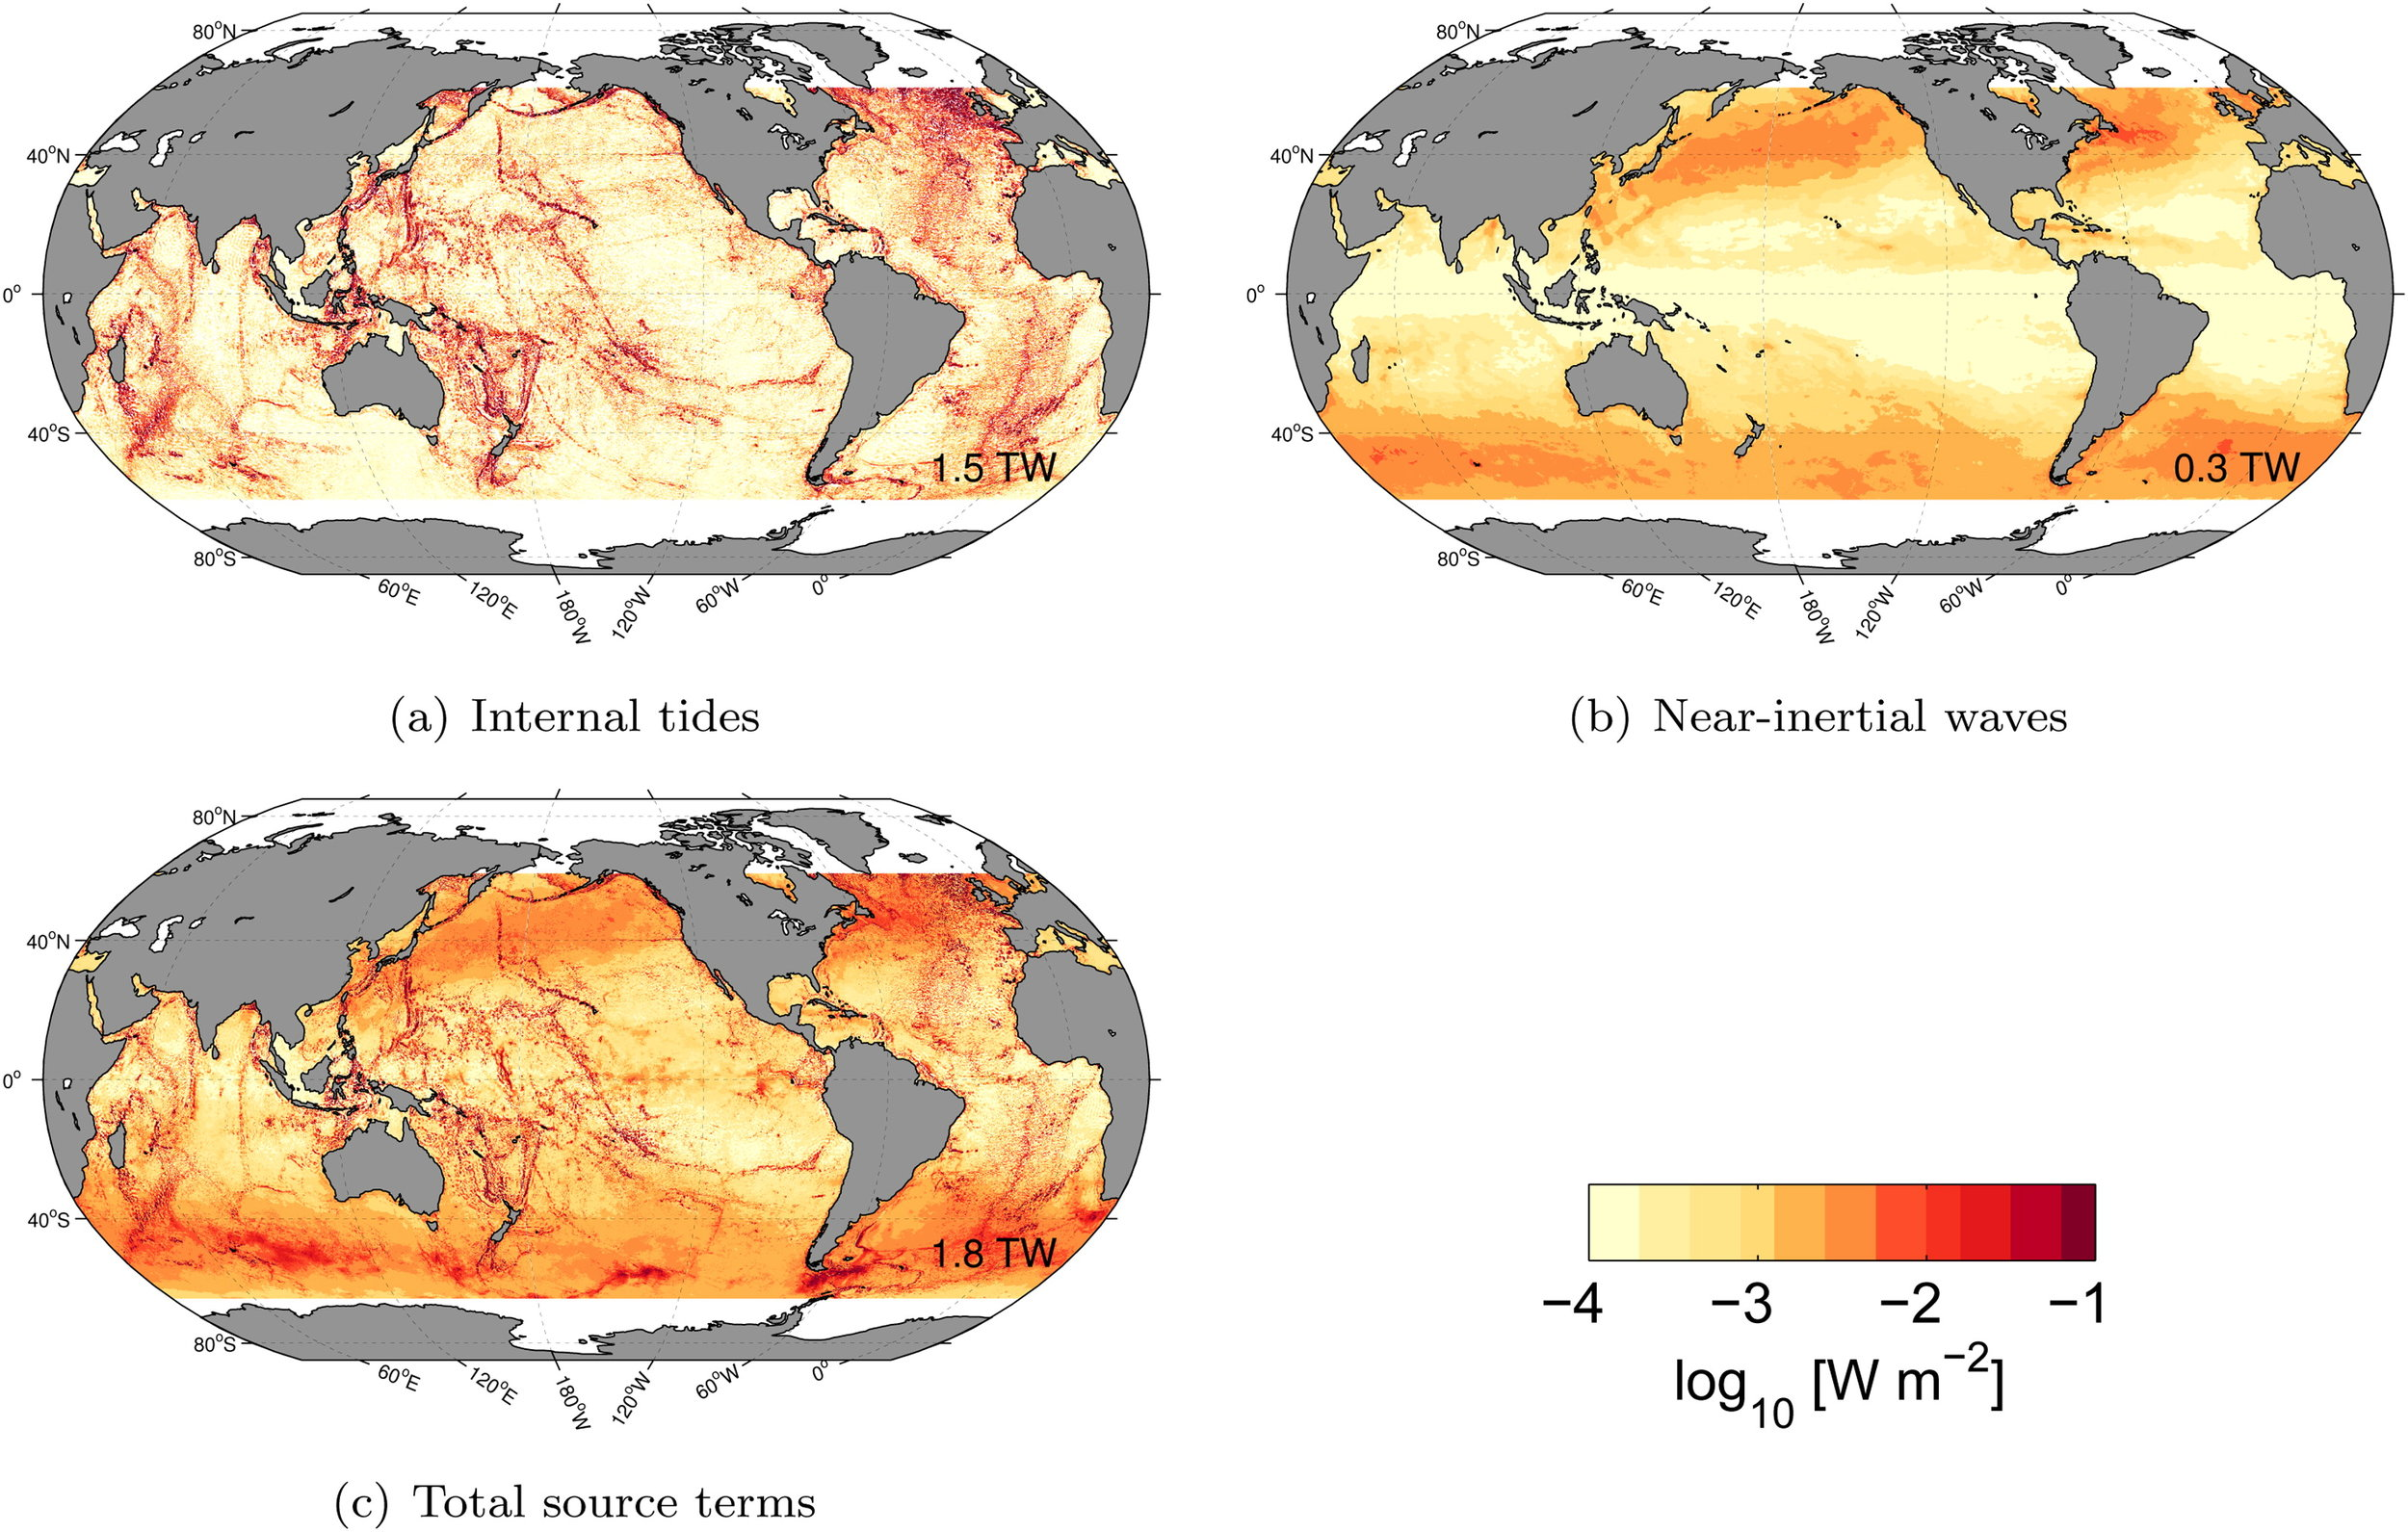 Source terms for the power input to the oceanic internal wave field plotted as log10 (W m−2). The combined source terms from the (a) tides and (b) winds give (c) the total source map. (Waterhouse et al, 2014)